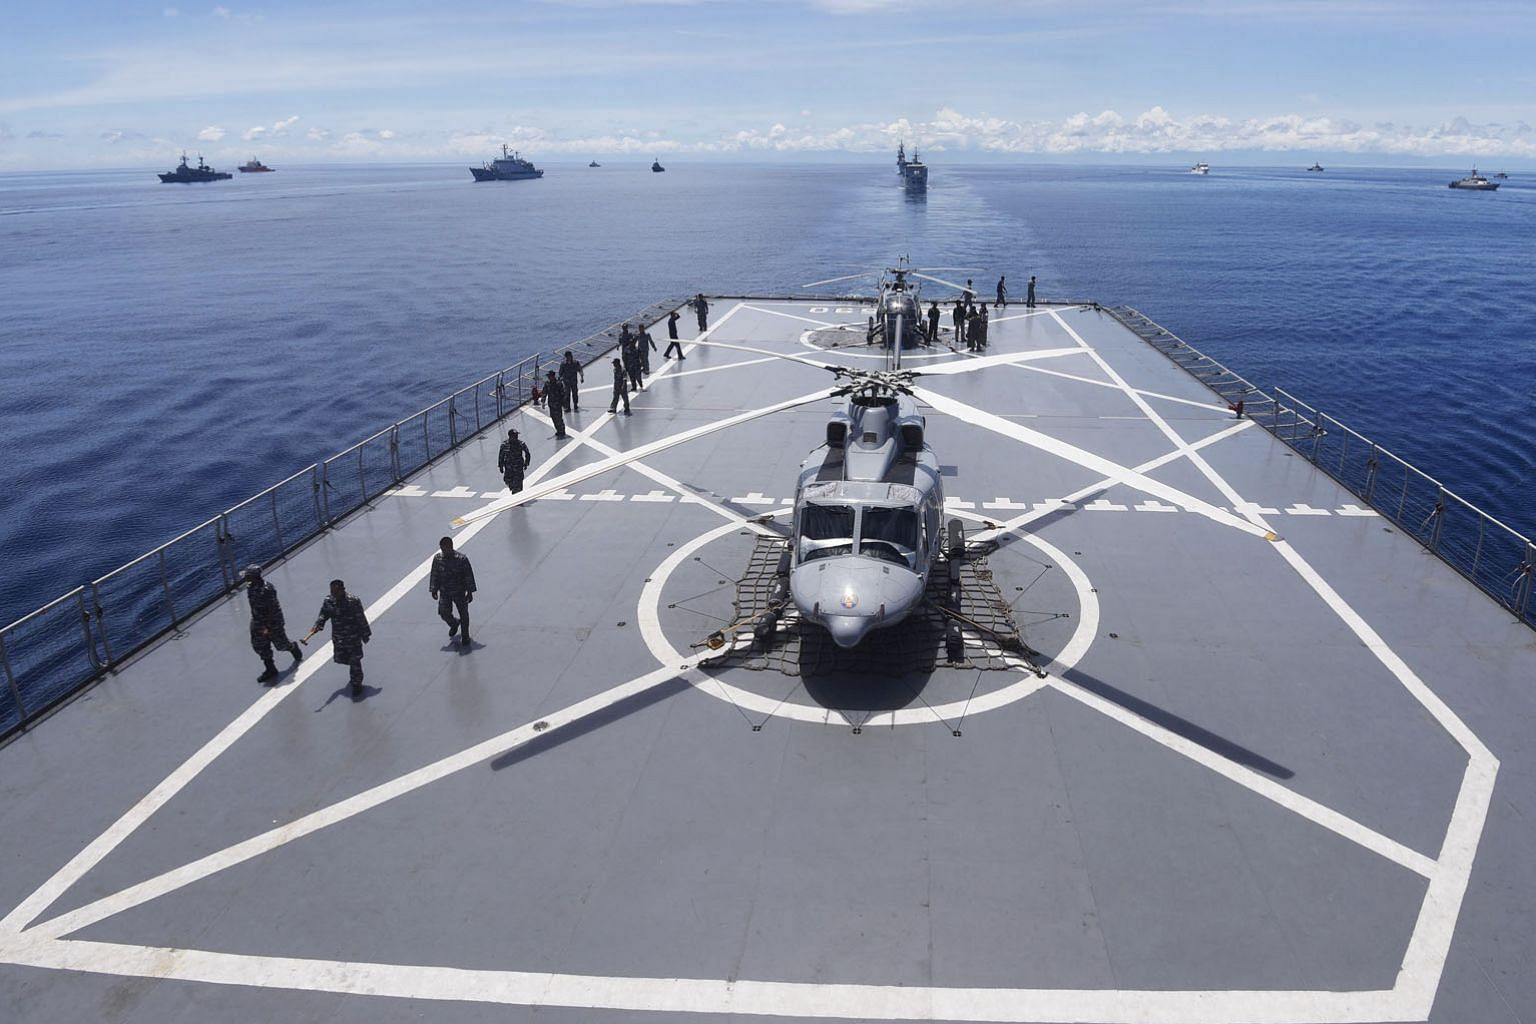 Navy helicopters on an Indonesian ship near the Mentawai Islands off the coast of West Sumatra, during the multinational Komodo exercise in 2016. According to the writer, Indonesia's maritime strategy could, and should, straddle the attractions of th